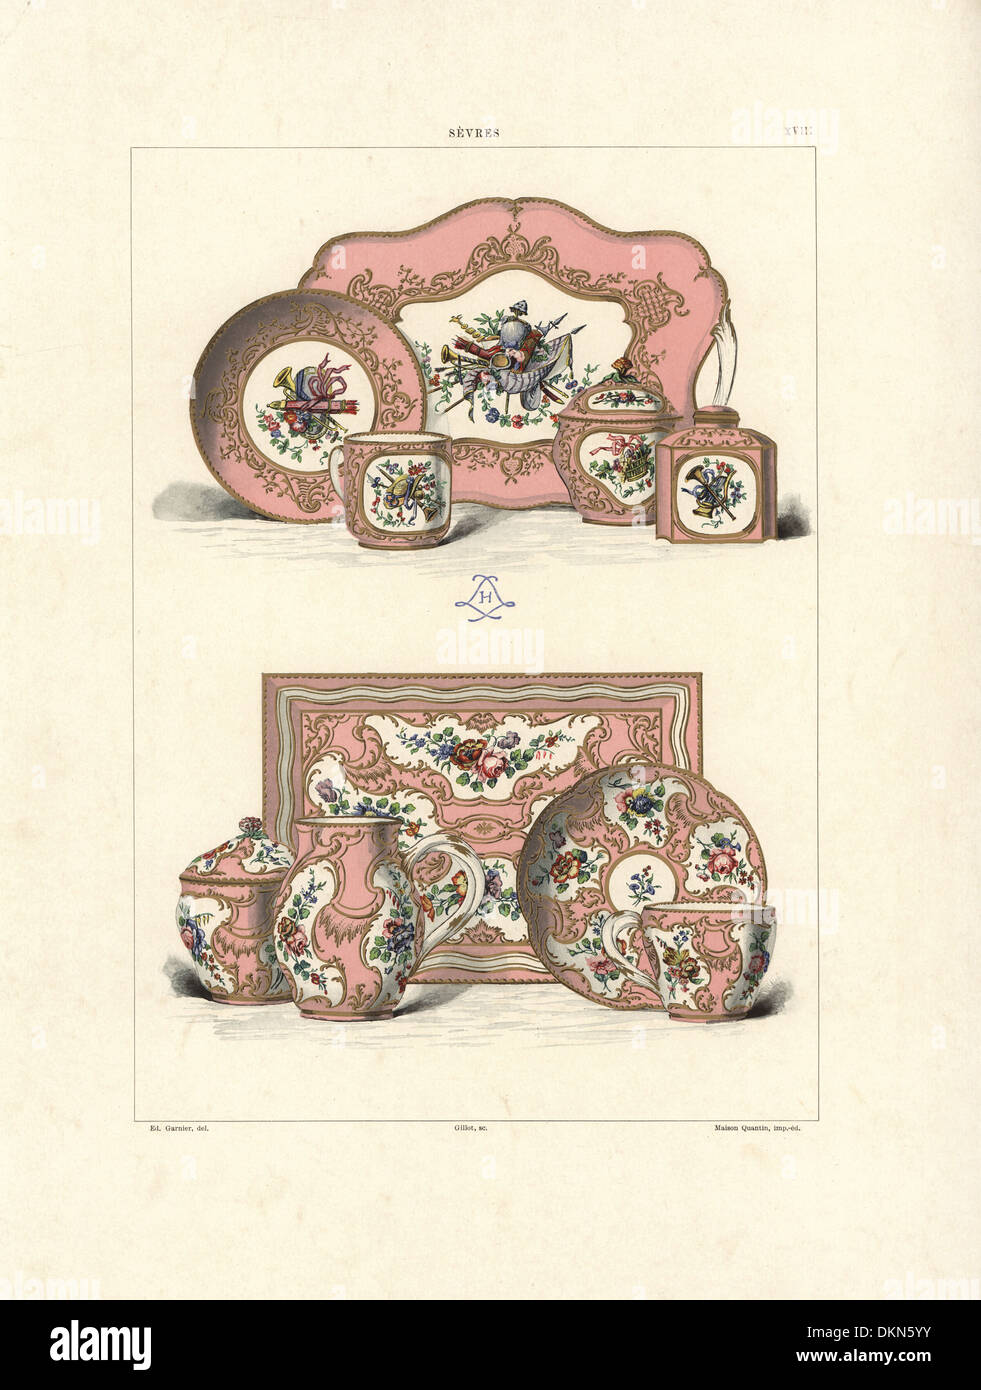 Sevres Solitaire tea service and coffee service. - Stock Image